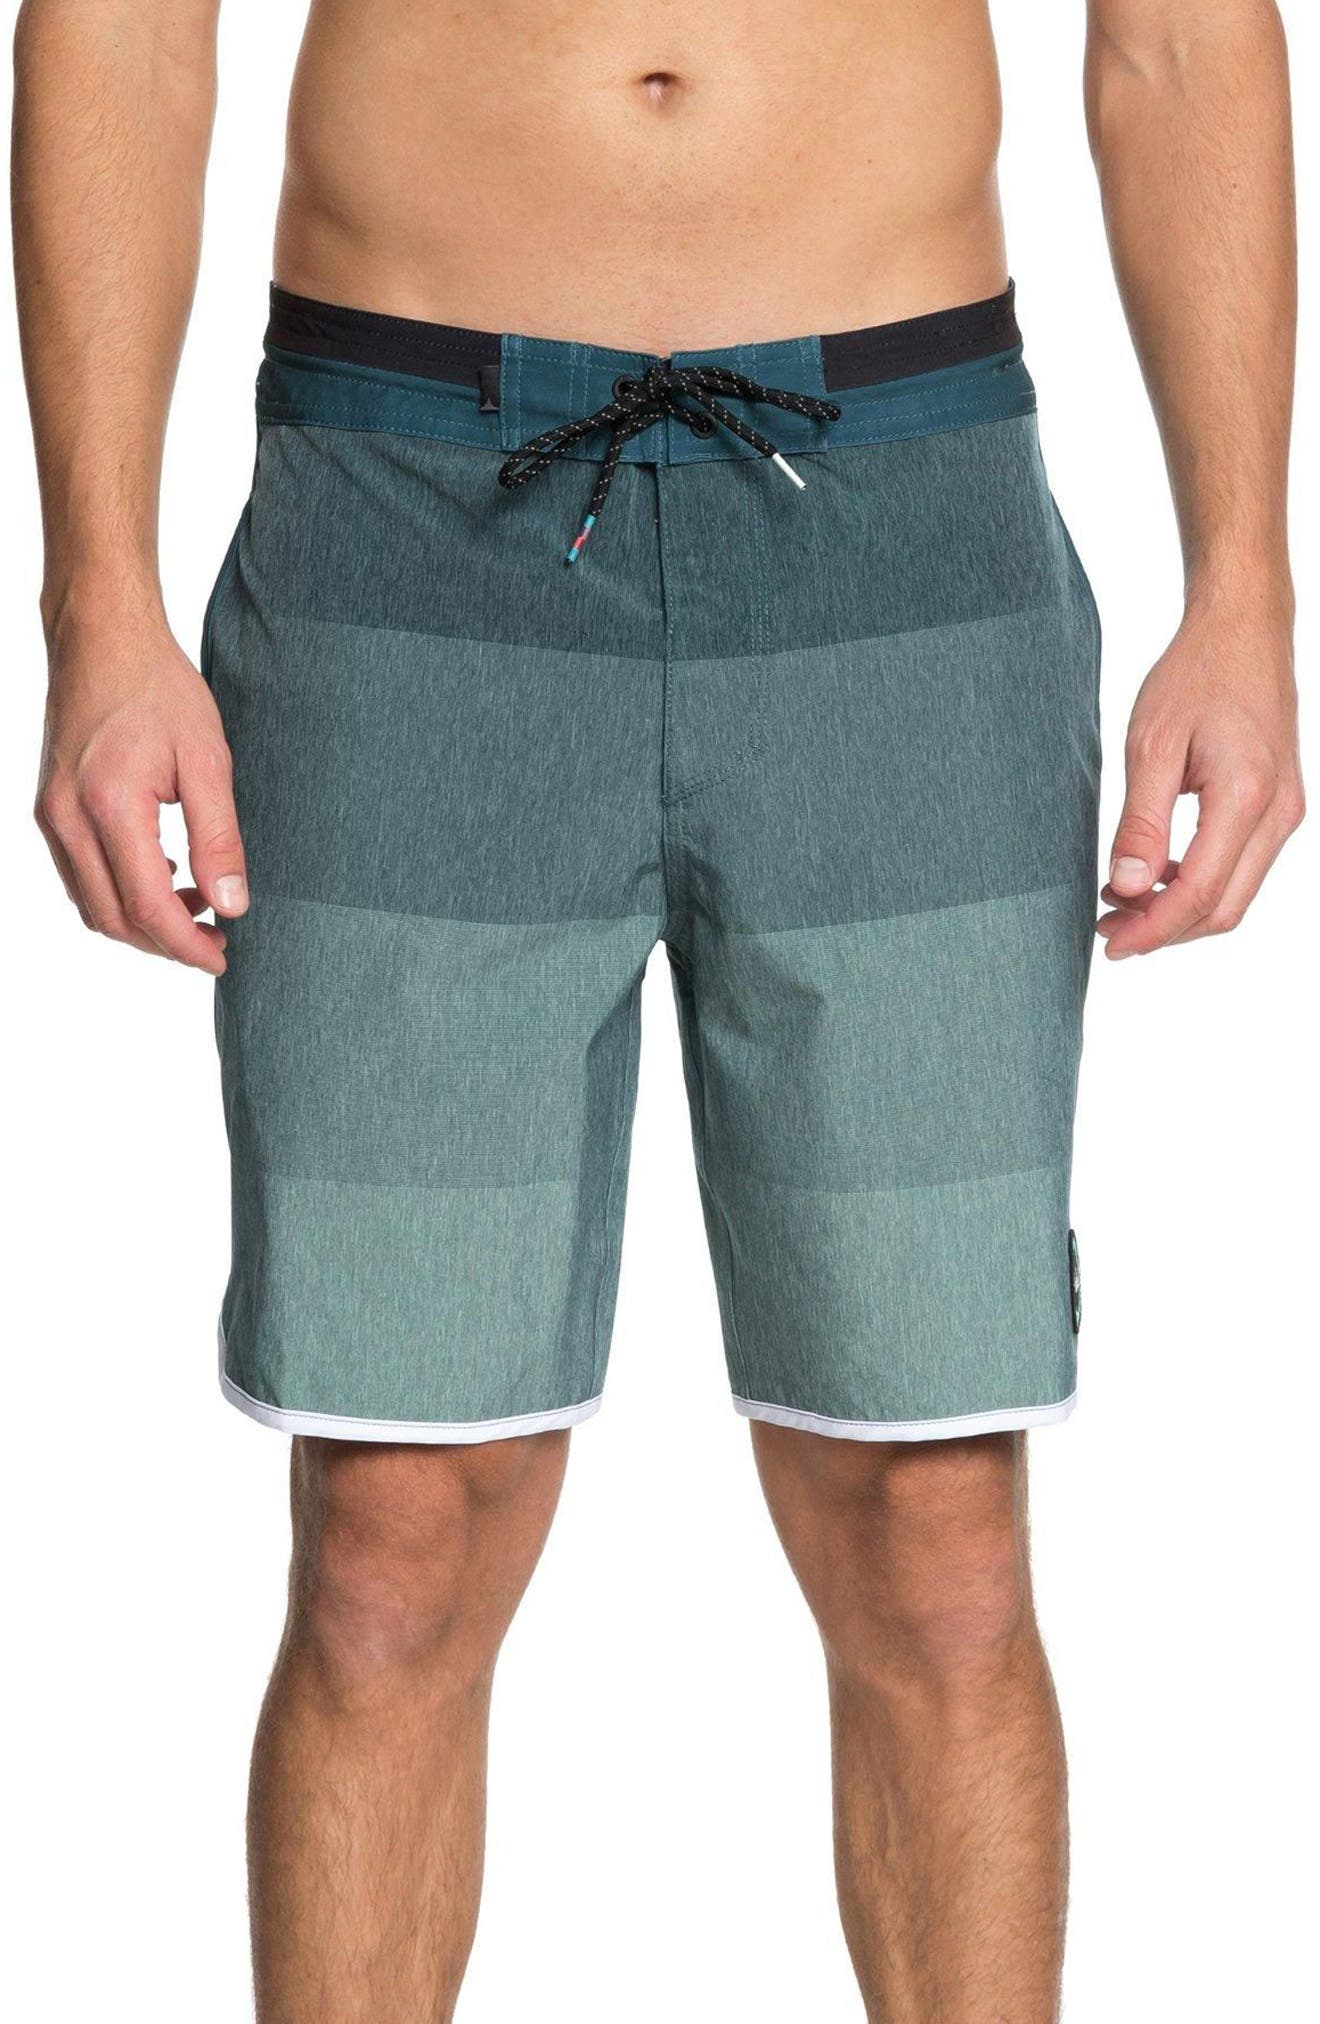 Vista Swim Shorts,                         Main,                         color, 406